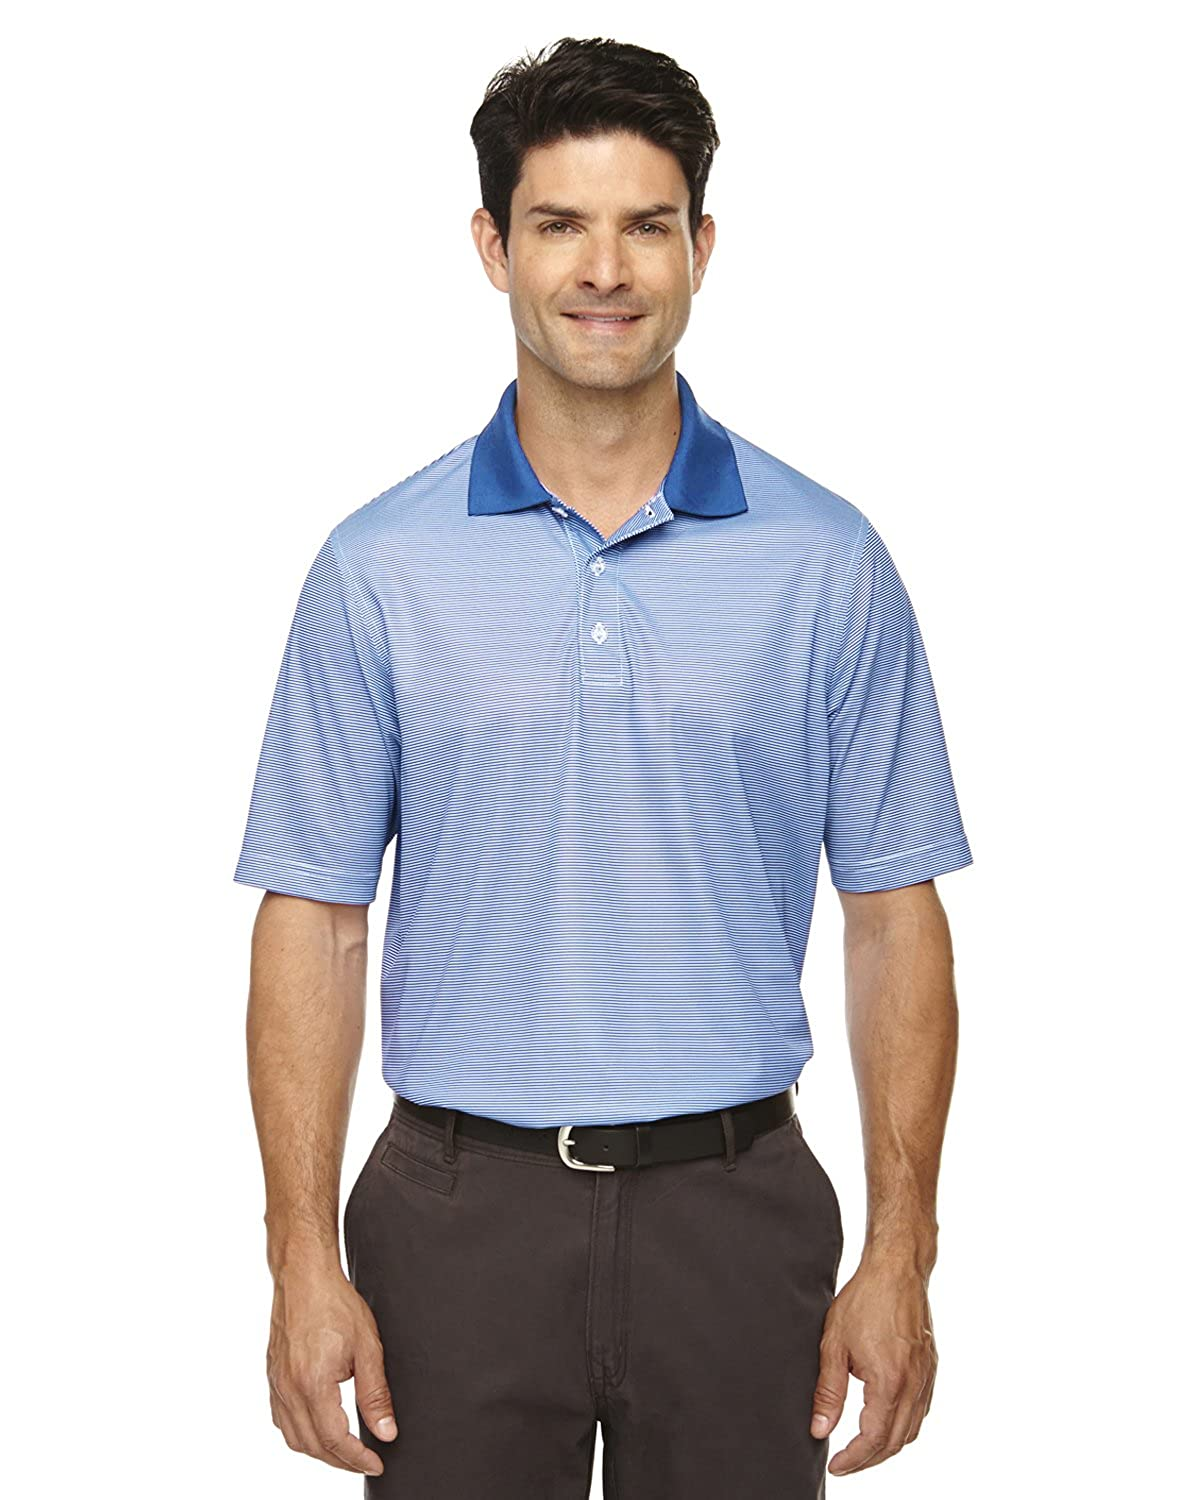 Large Extreme Eperformance Mens Snag Protection Striped Polo NAUTICL Blue 413